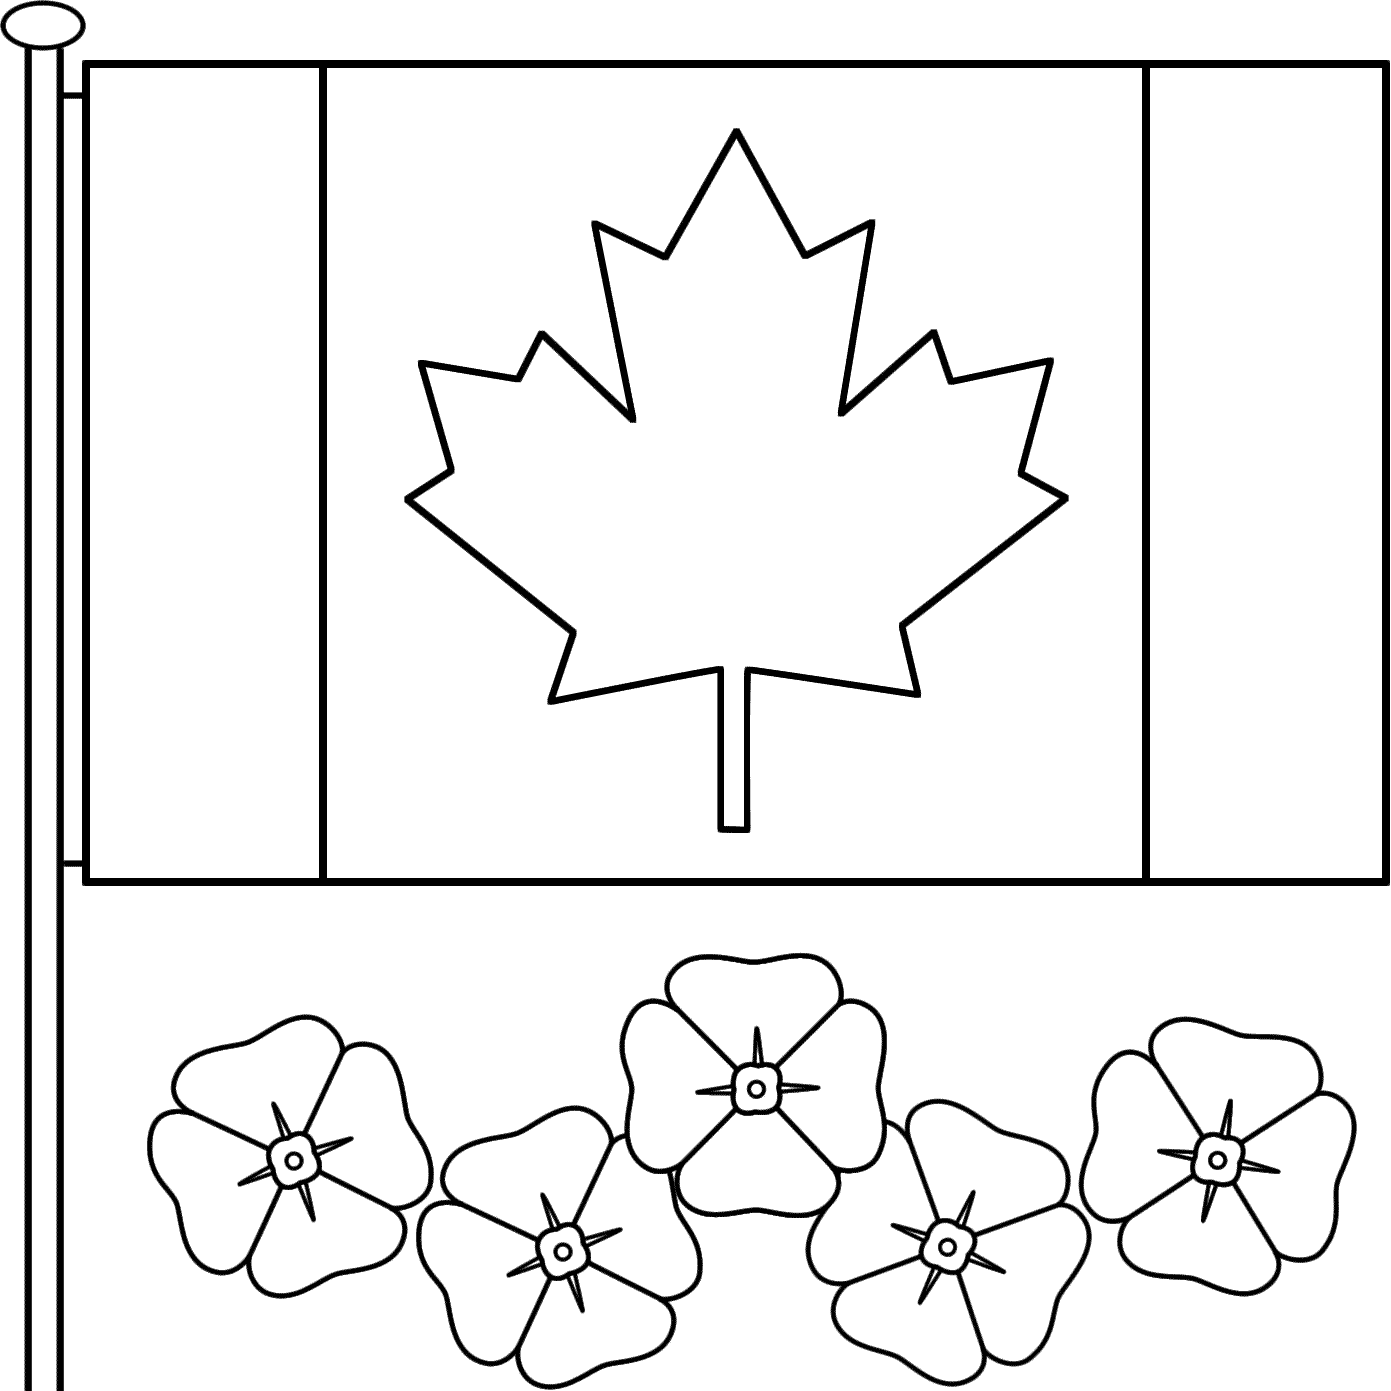 Remembrance Day Canada Colouring Pages